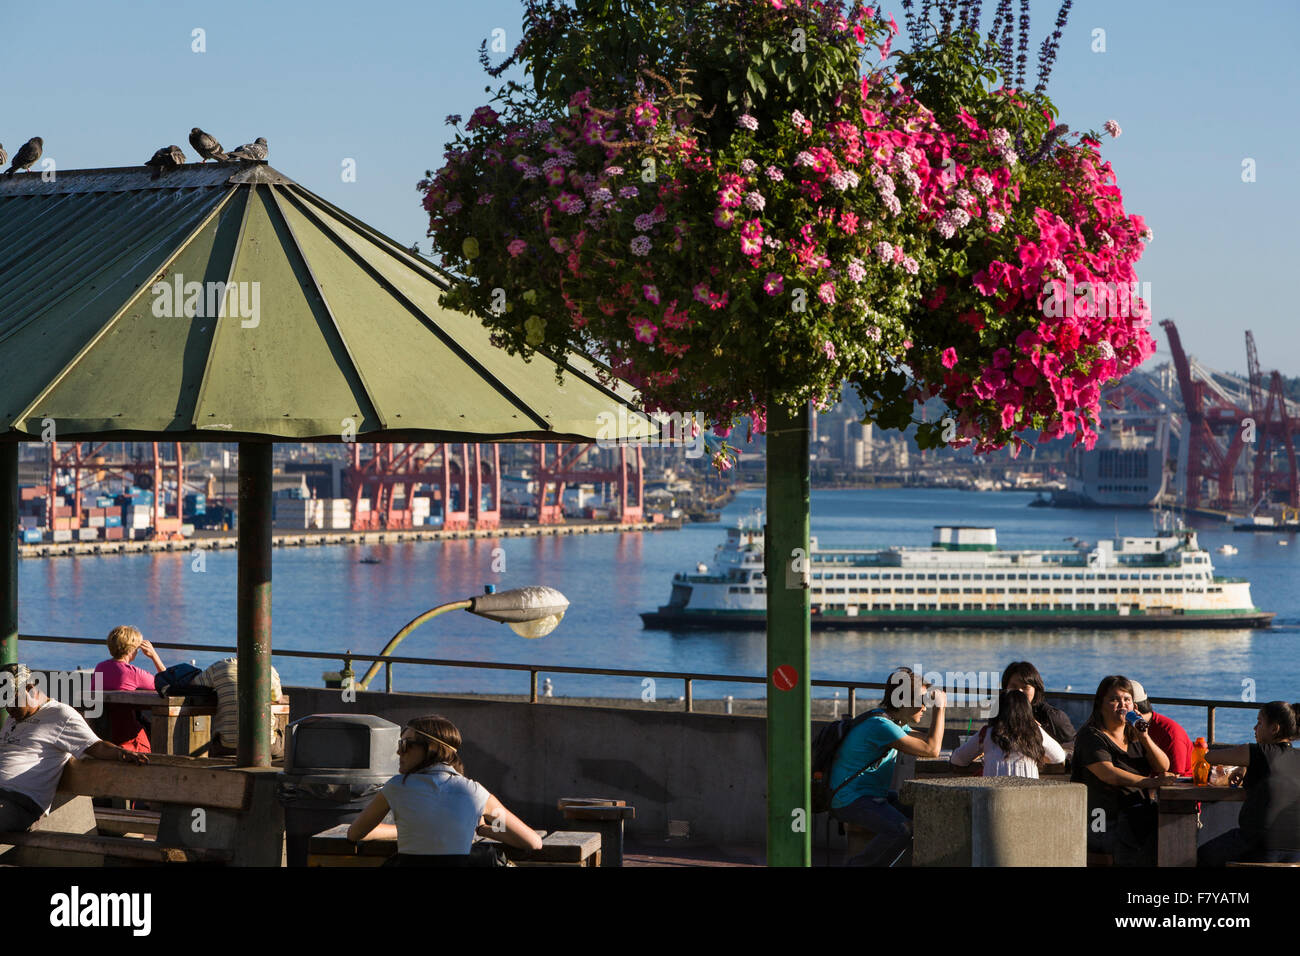 Victor Steinbreuck Park, Seattle, Washington, United States - Stock Image